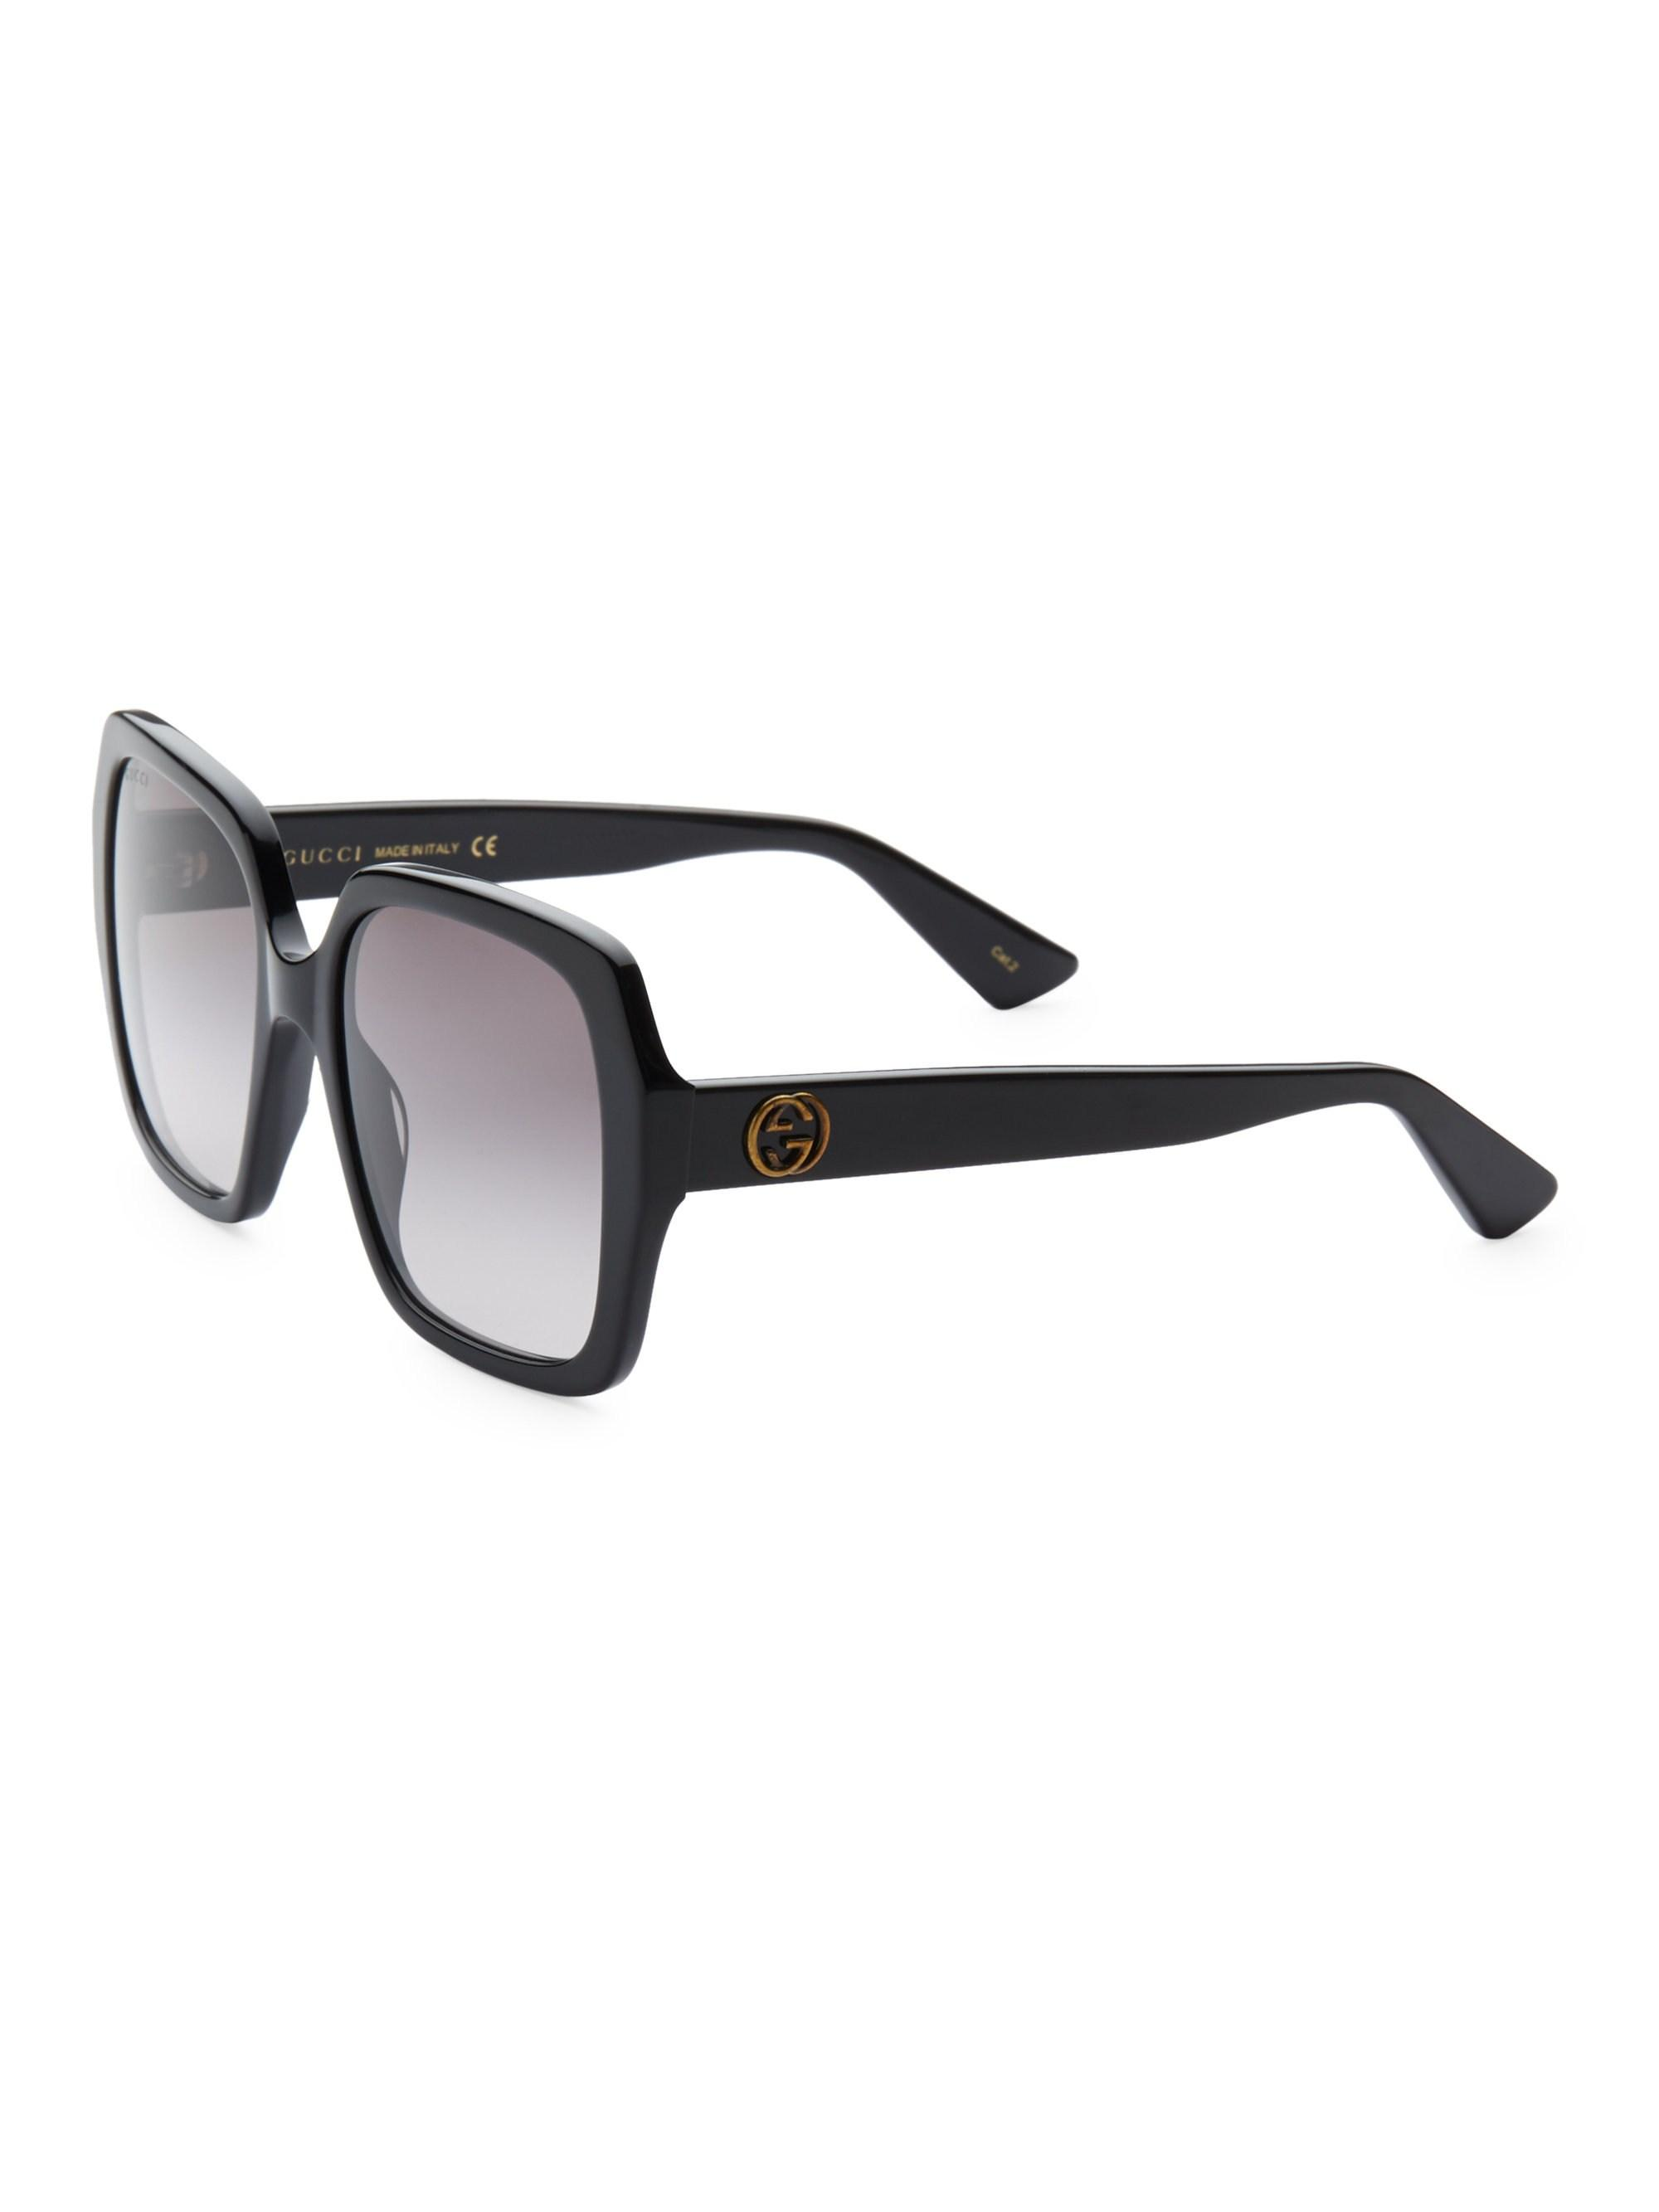 d3ee21d86d Gucci - Women s 54mm Square Two-tone Sunglasses - Black - Lyst. View  fullscreen